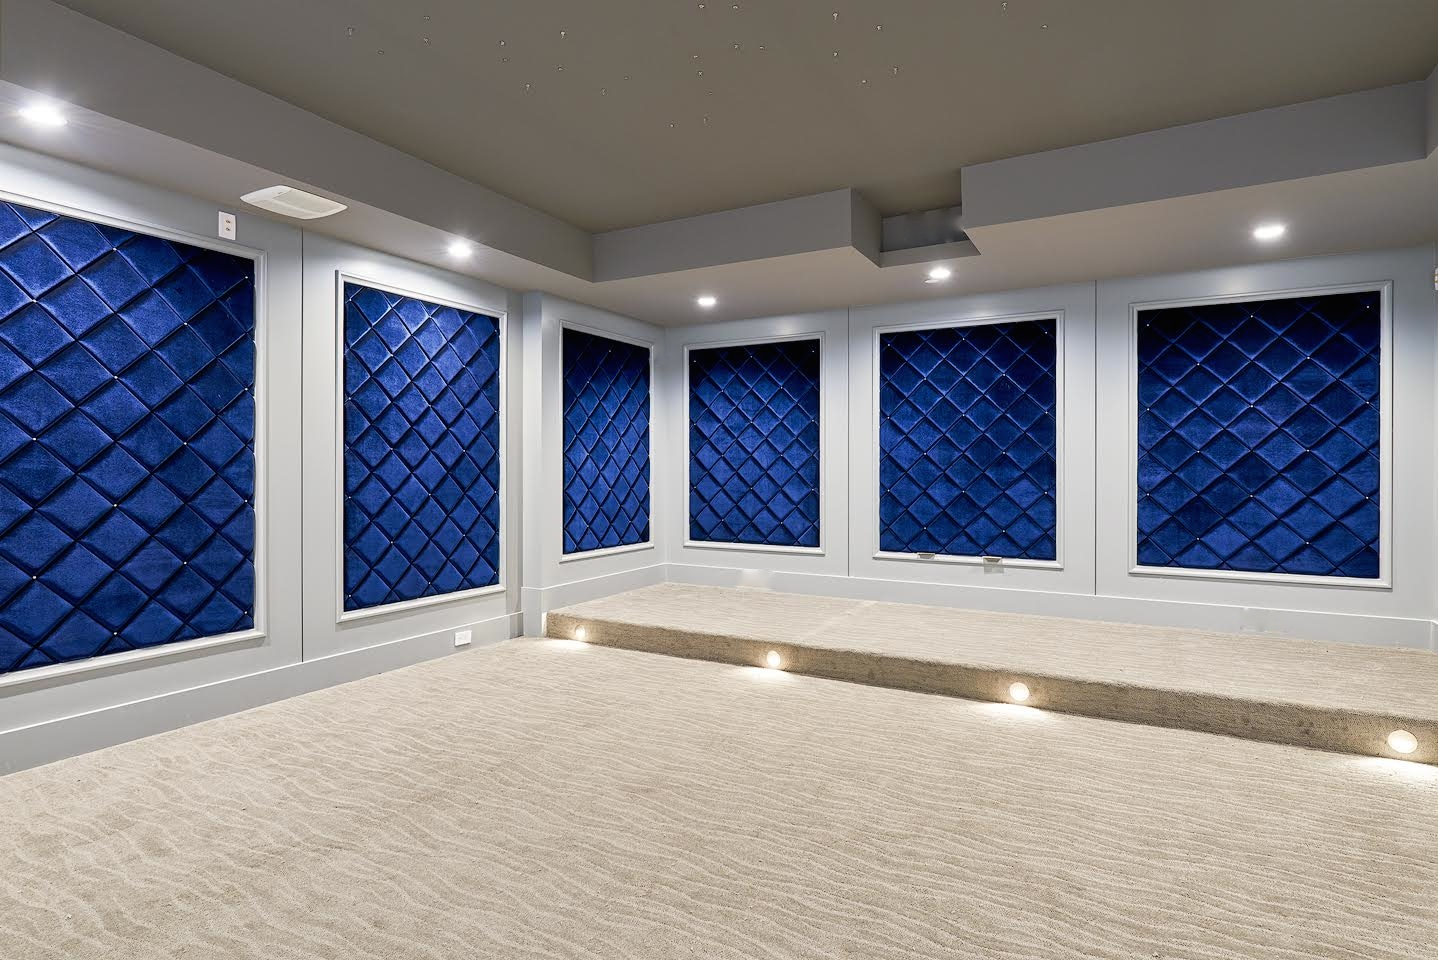 Upholstered diamond wall panels for a home theater.